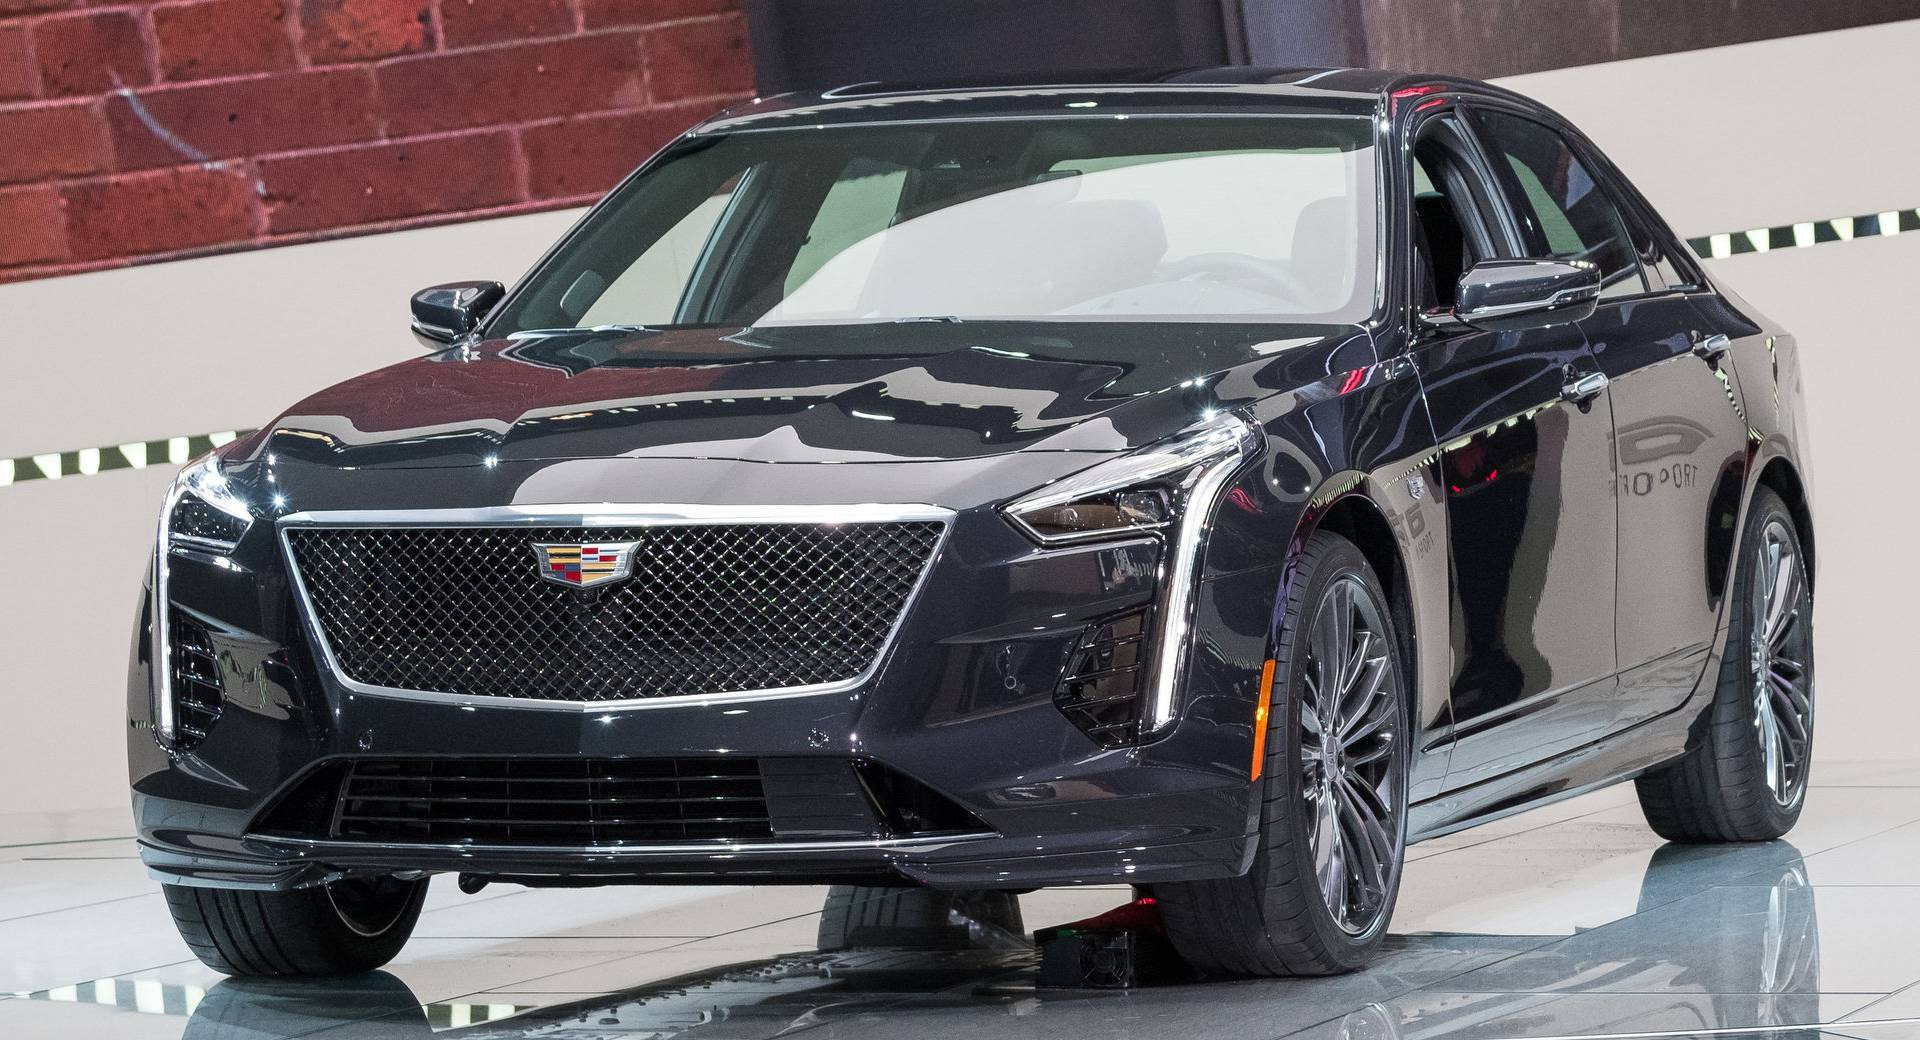 Cadillac's Blackwing Twin-Turbo V8 Comes To $97,000 CT6 Platinum | Carscoops